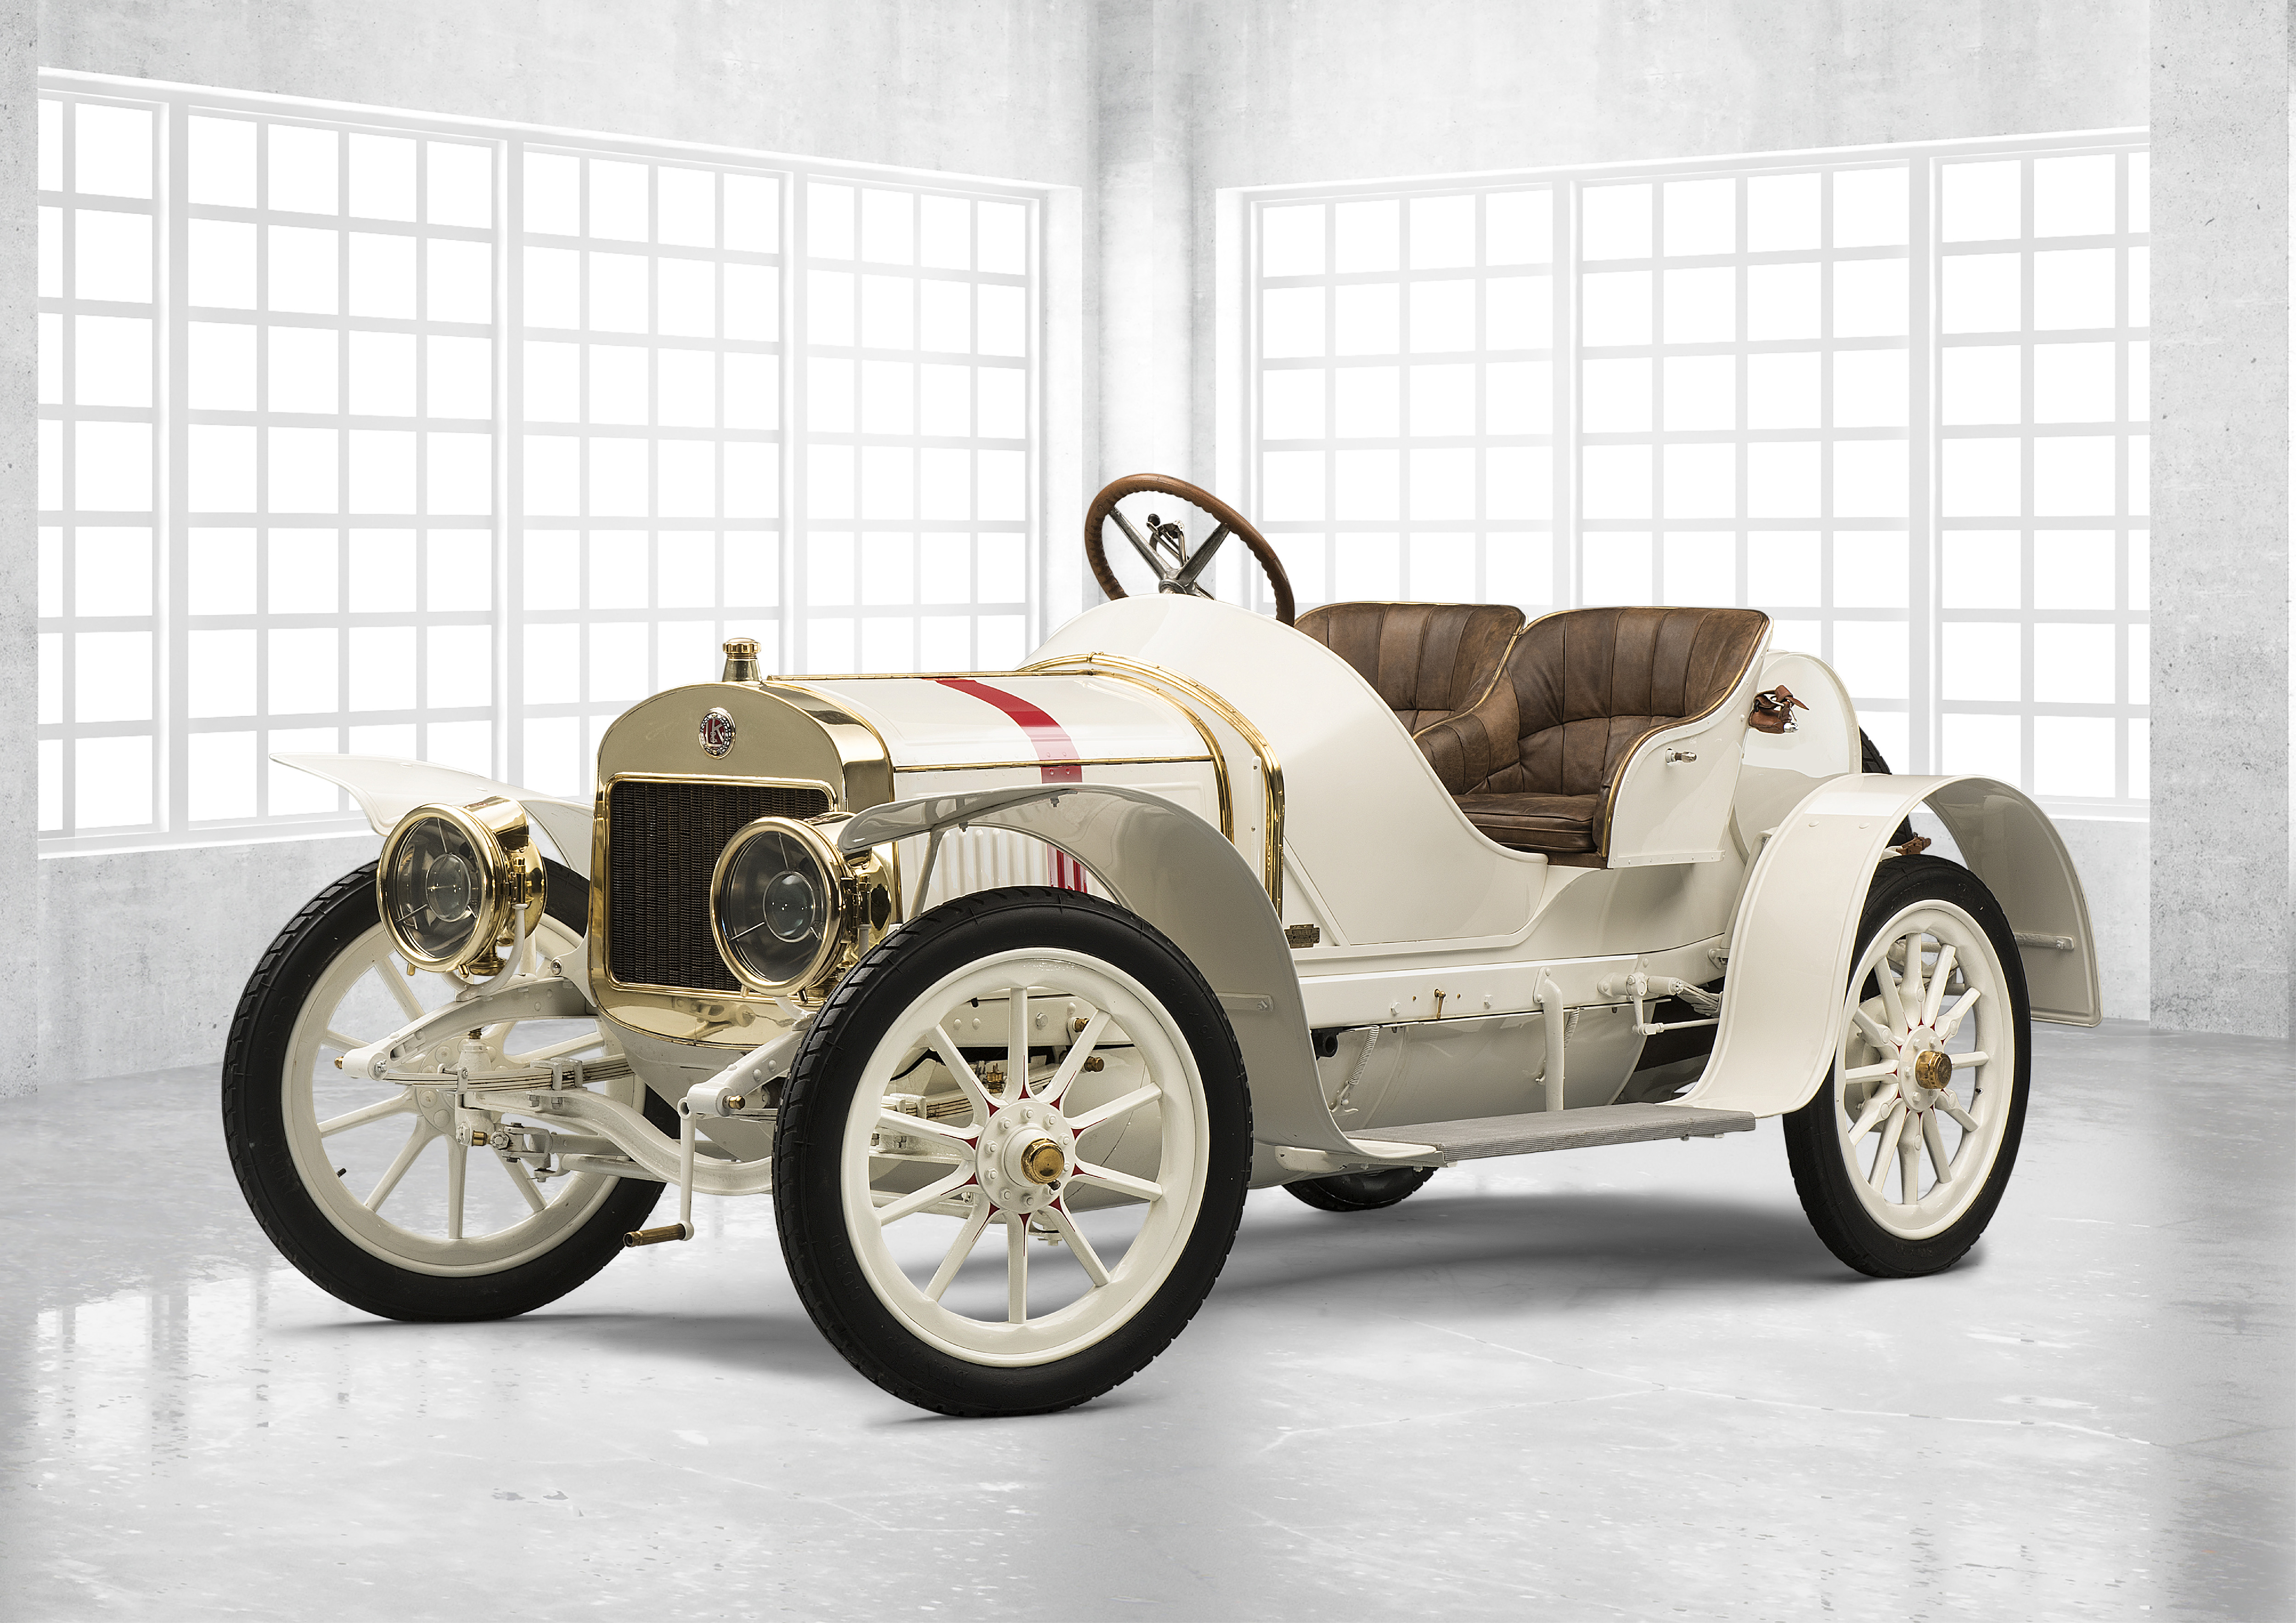 Laurin & Klement FC from 1908: The first major motor racing successes of automobiles from Mladá Boleslav - Image 8